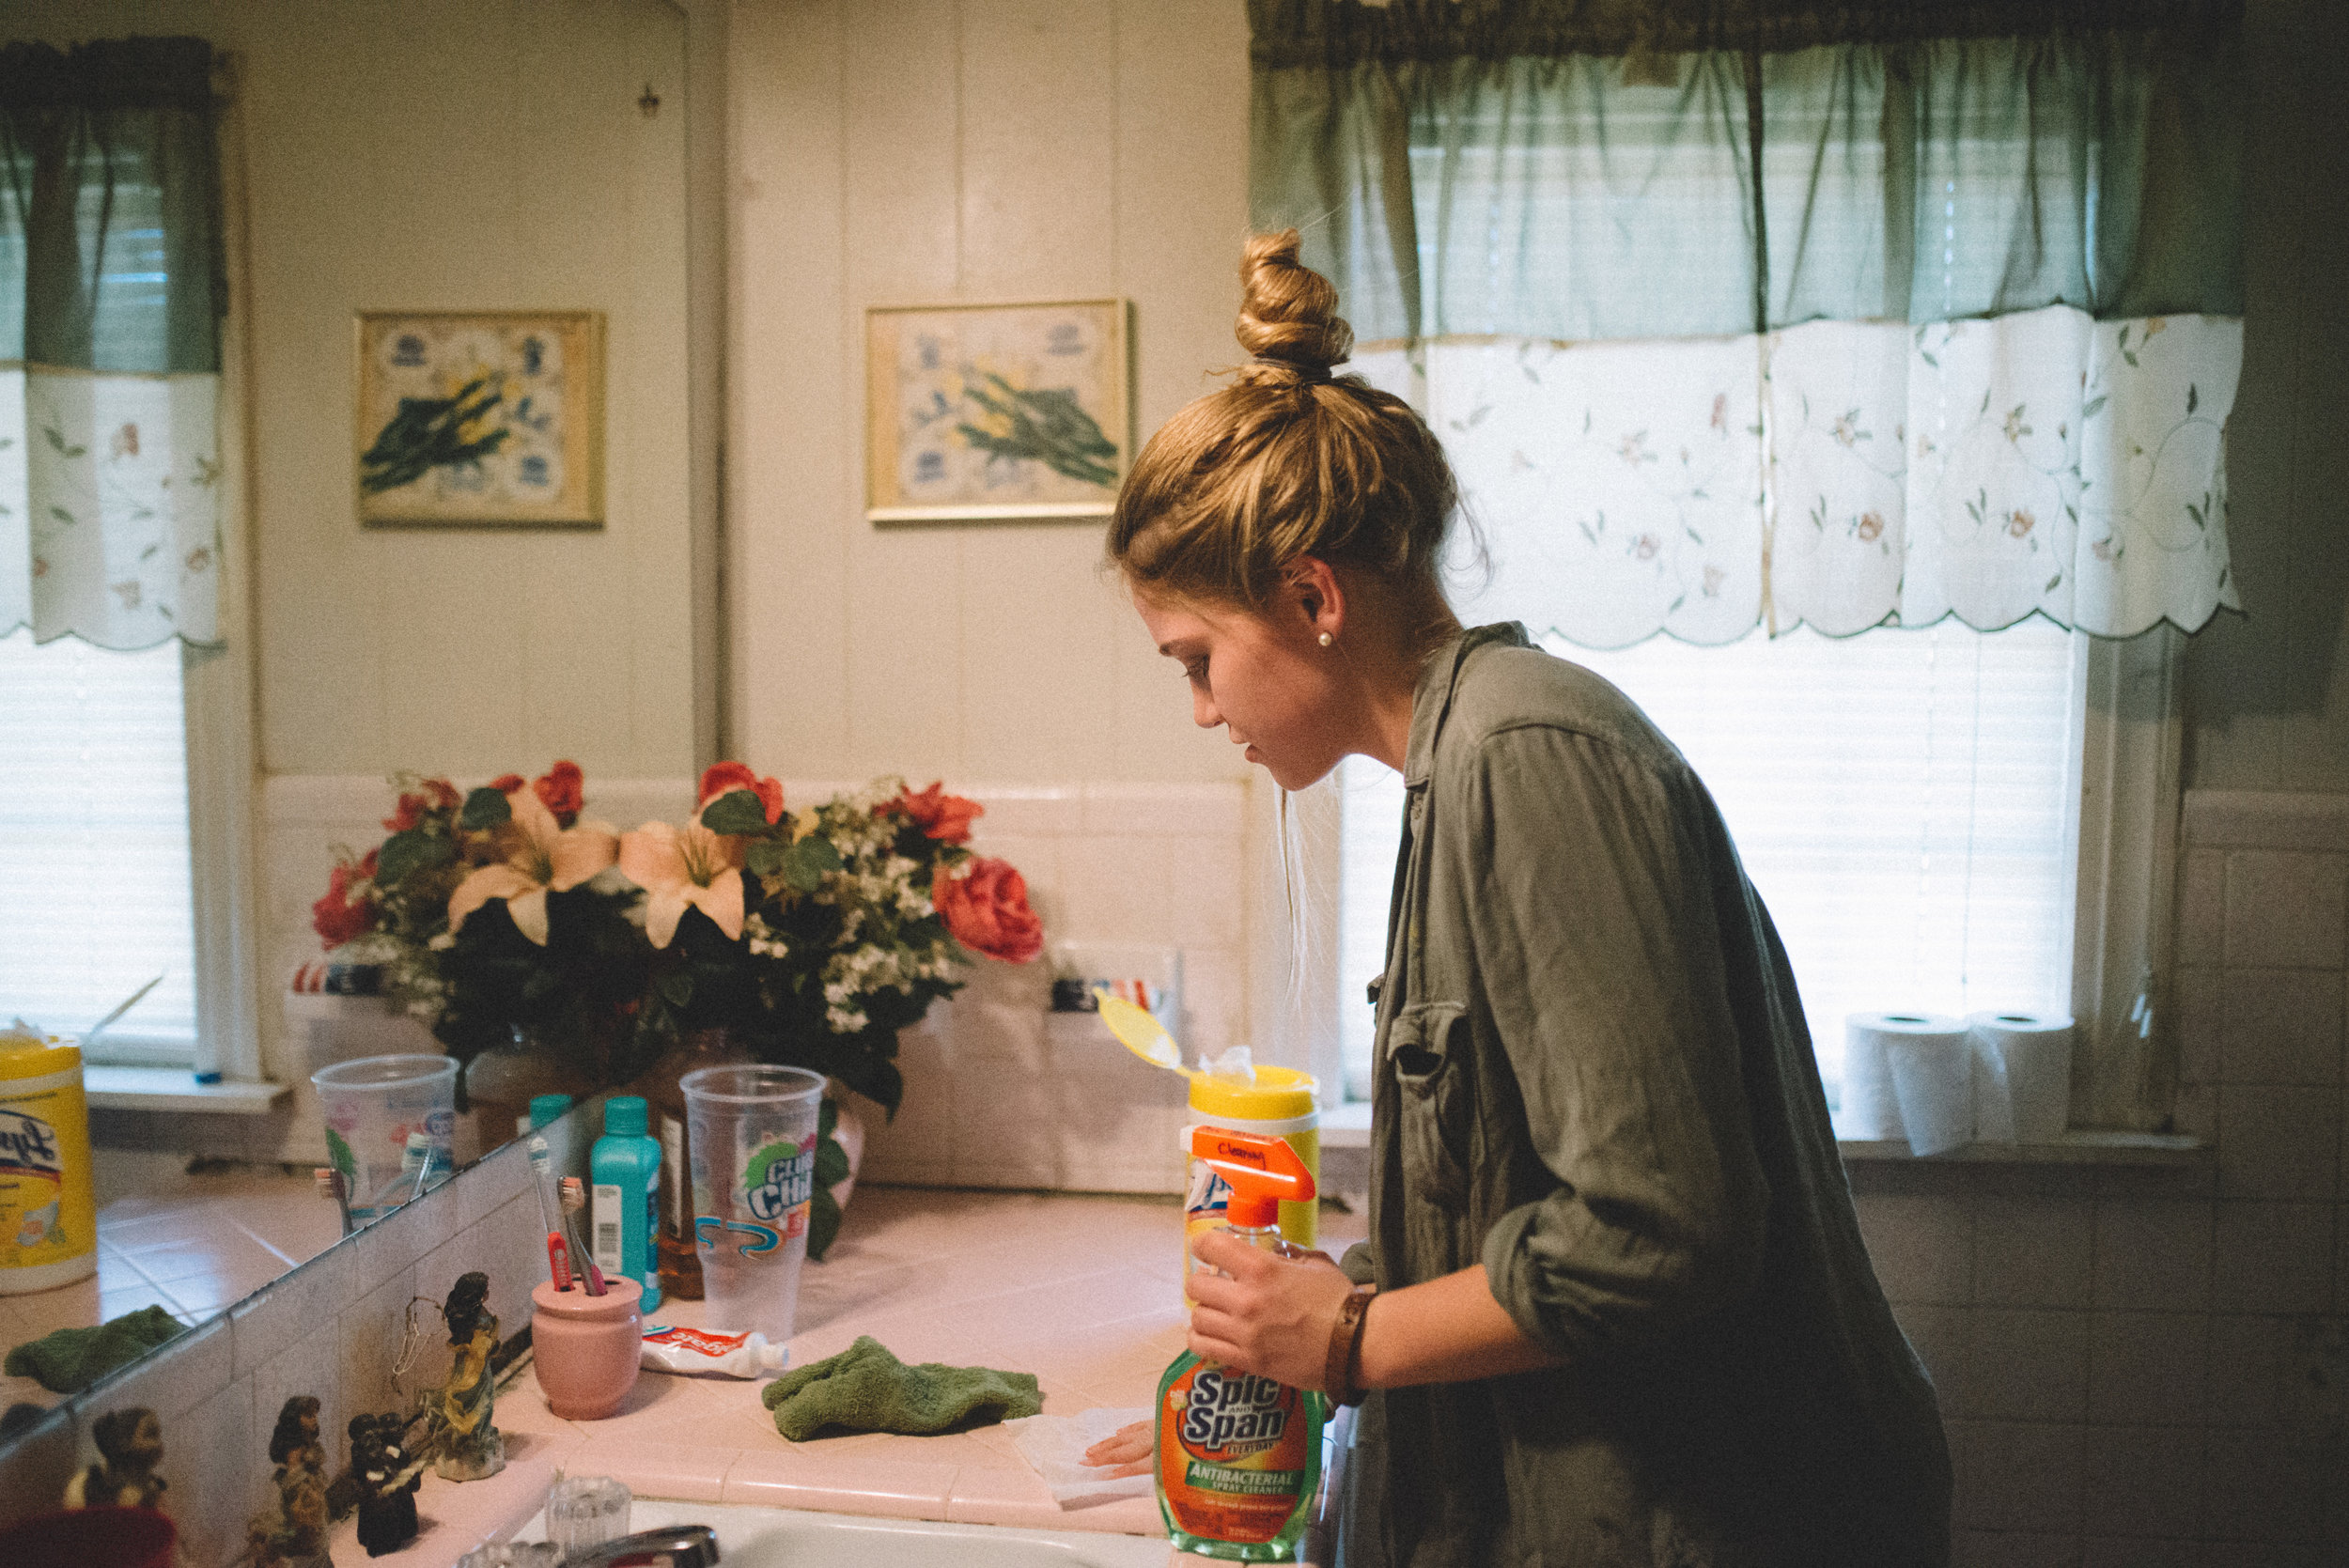 Institute student Amanda Byrd does a service to elderly neighbors by cleaning their home.